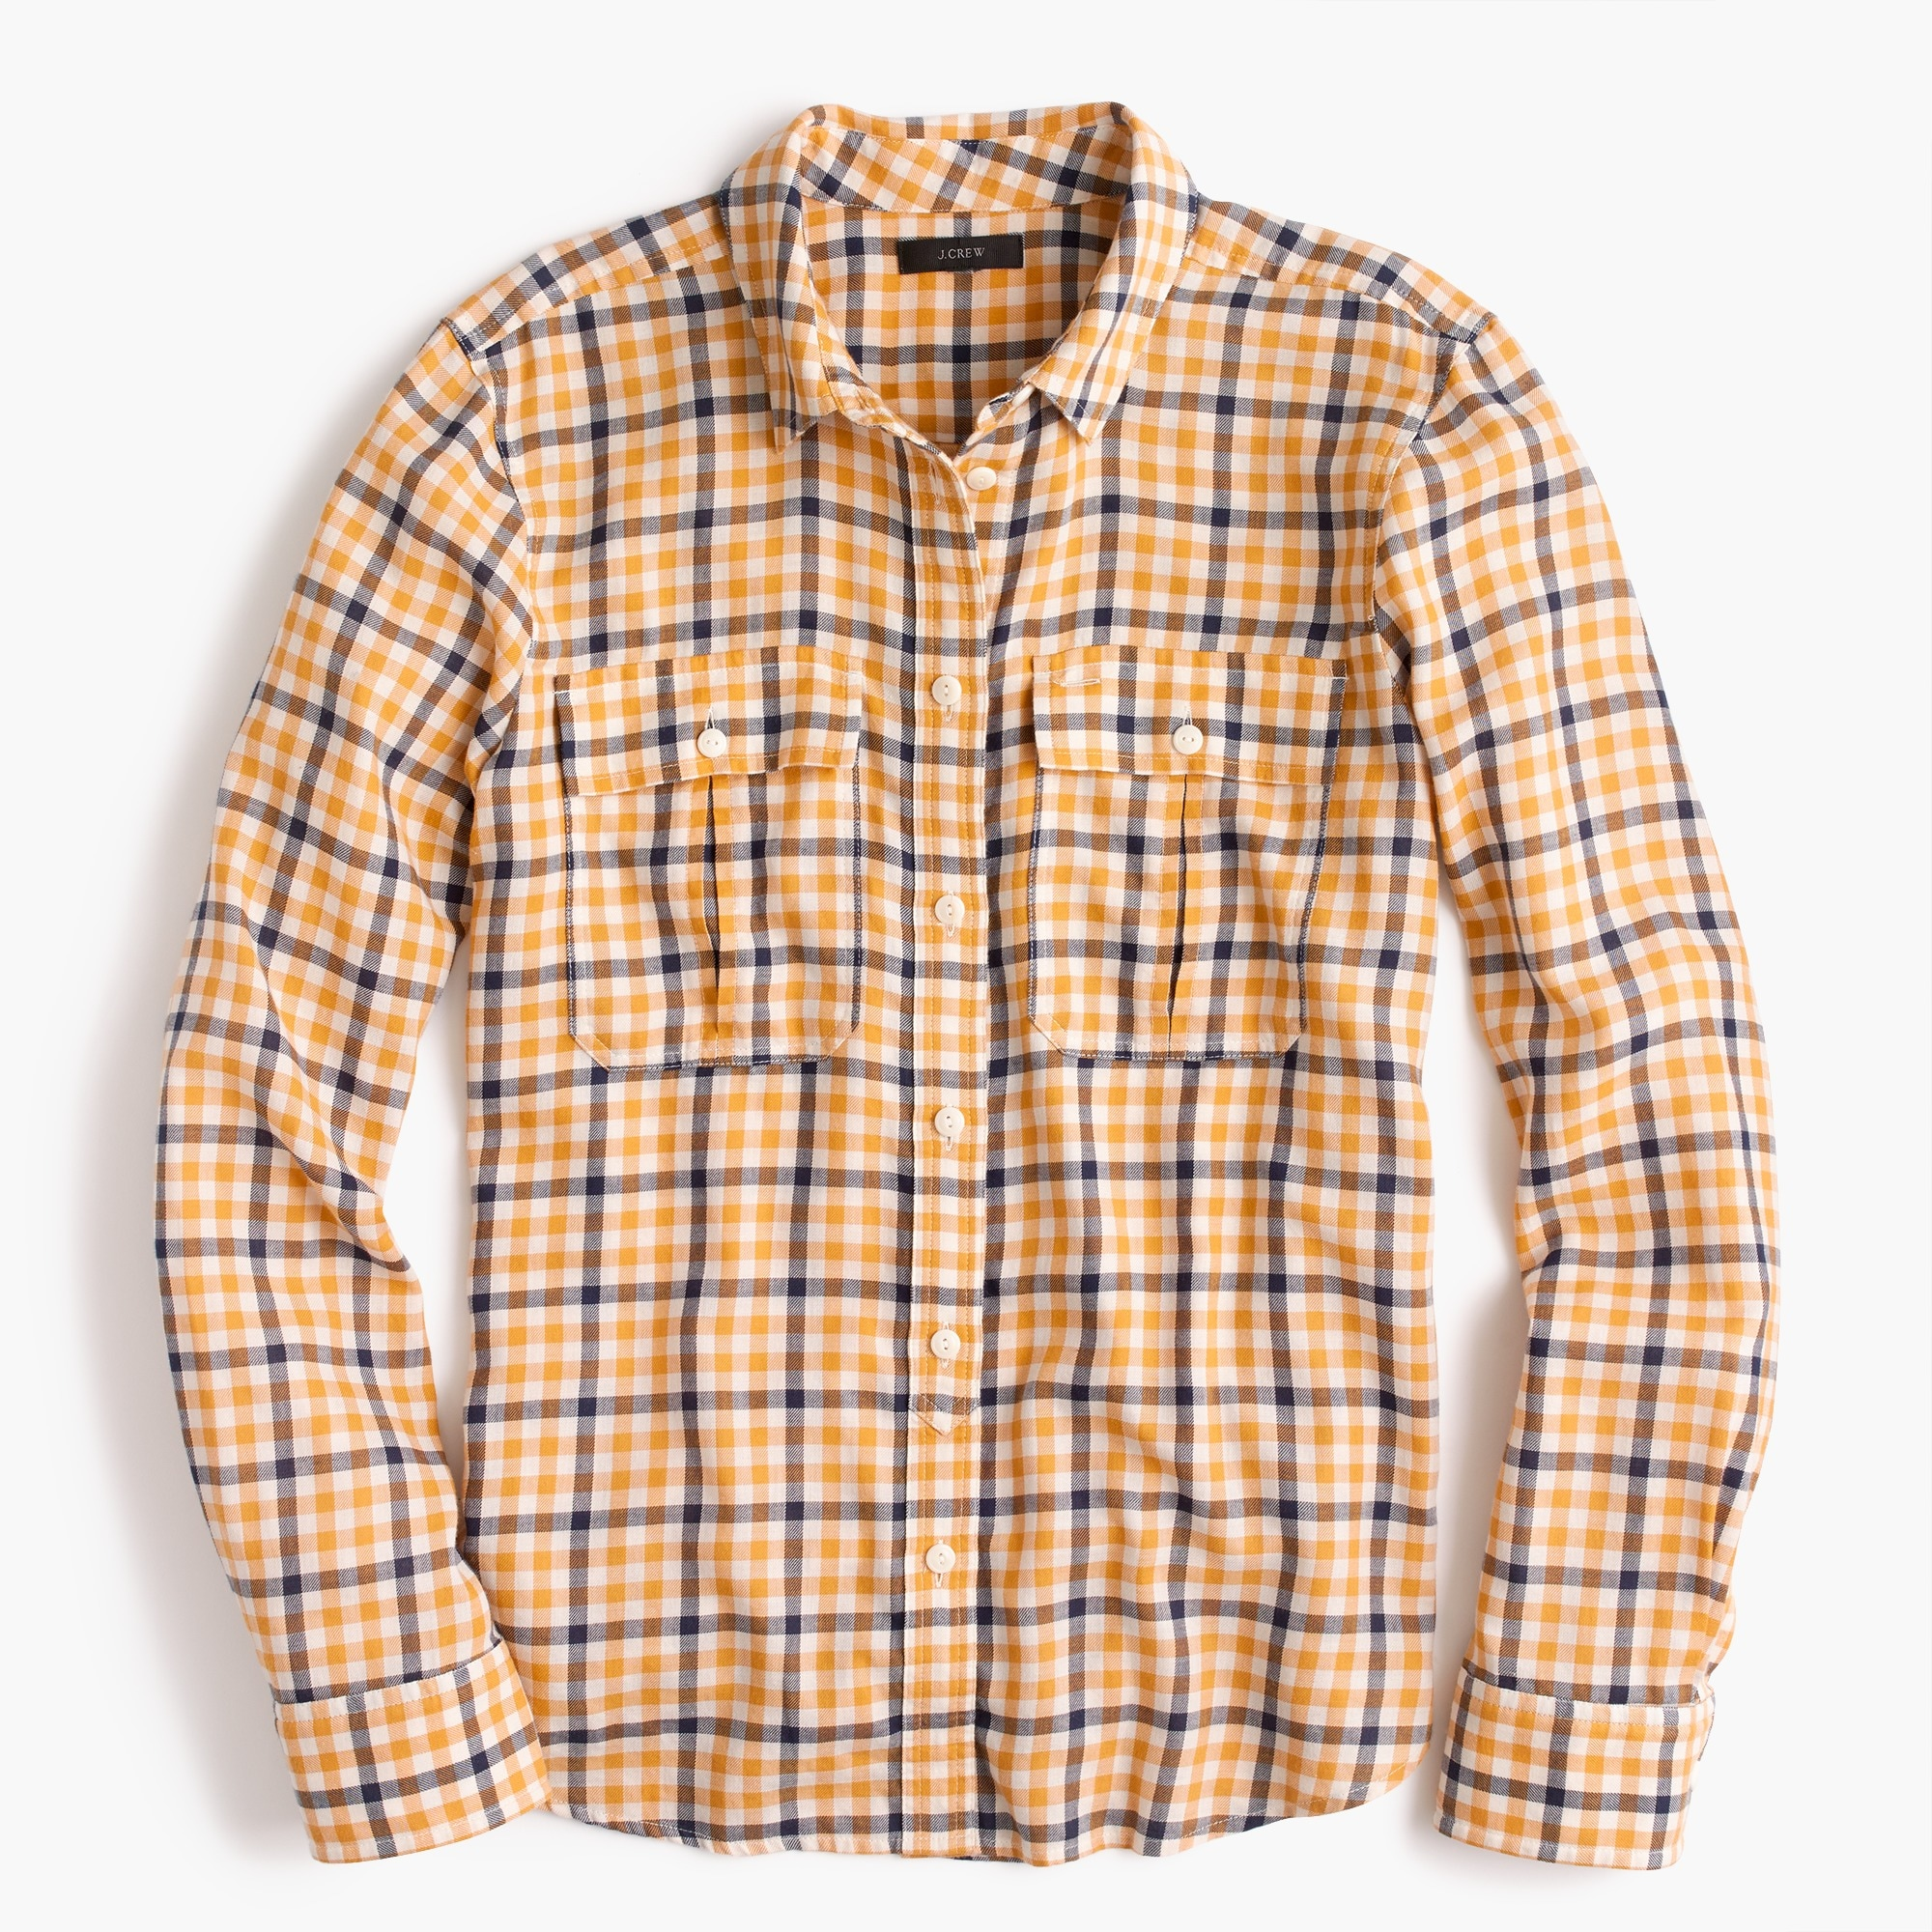 Image 1 for Boyfriend shirt in topaz plaid